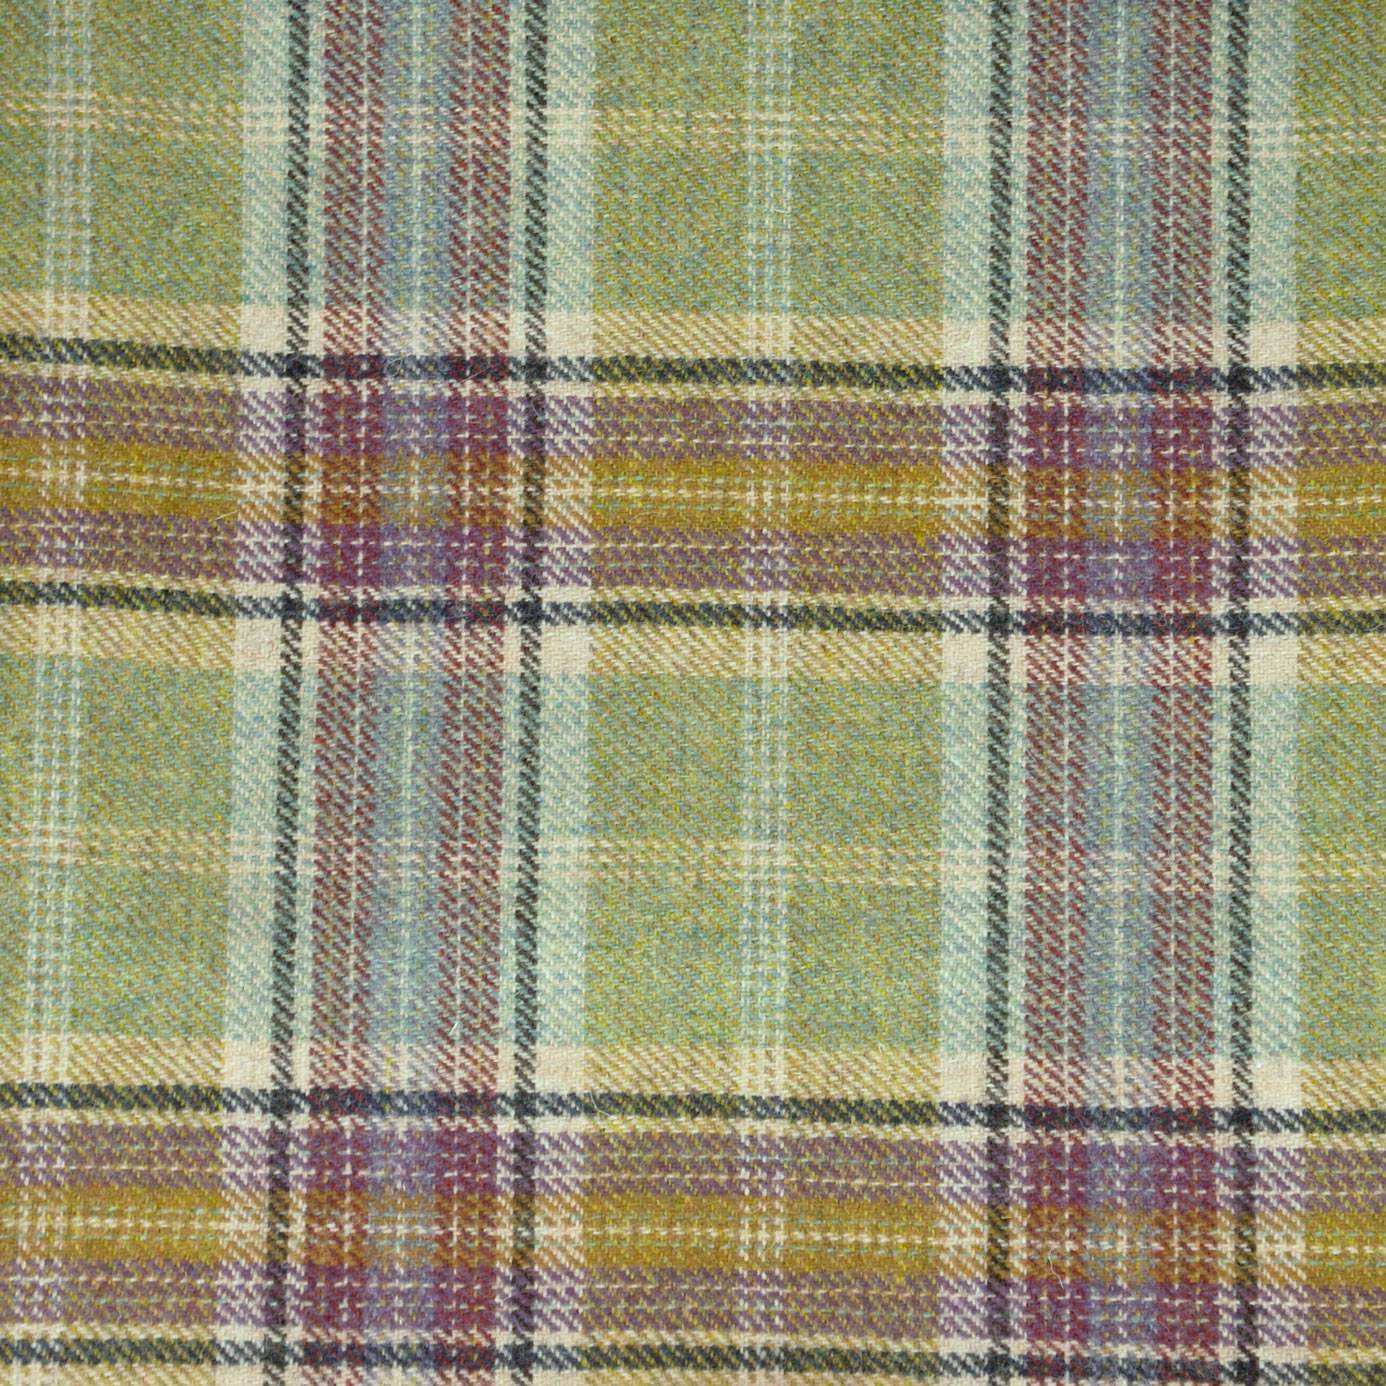 Balmoral Olivine Fabric Highland Wool Chess Designs